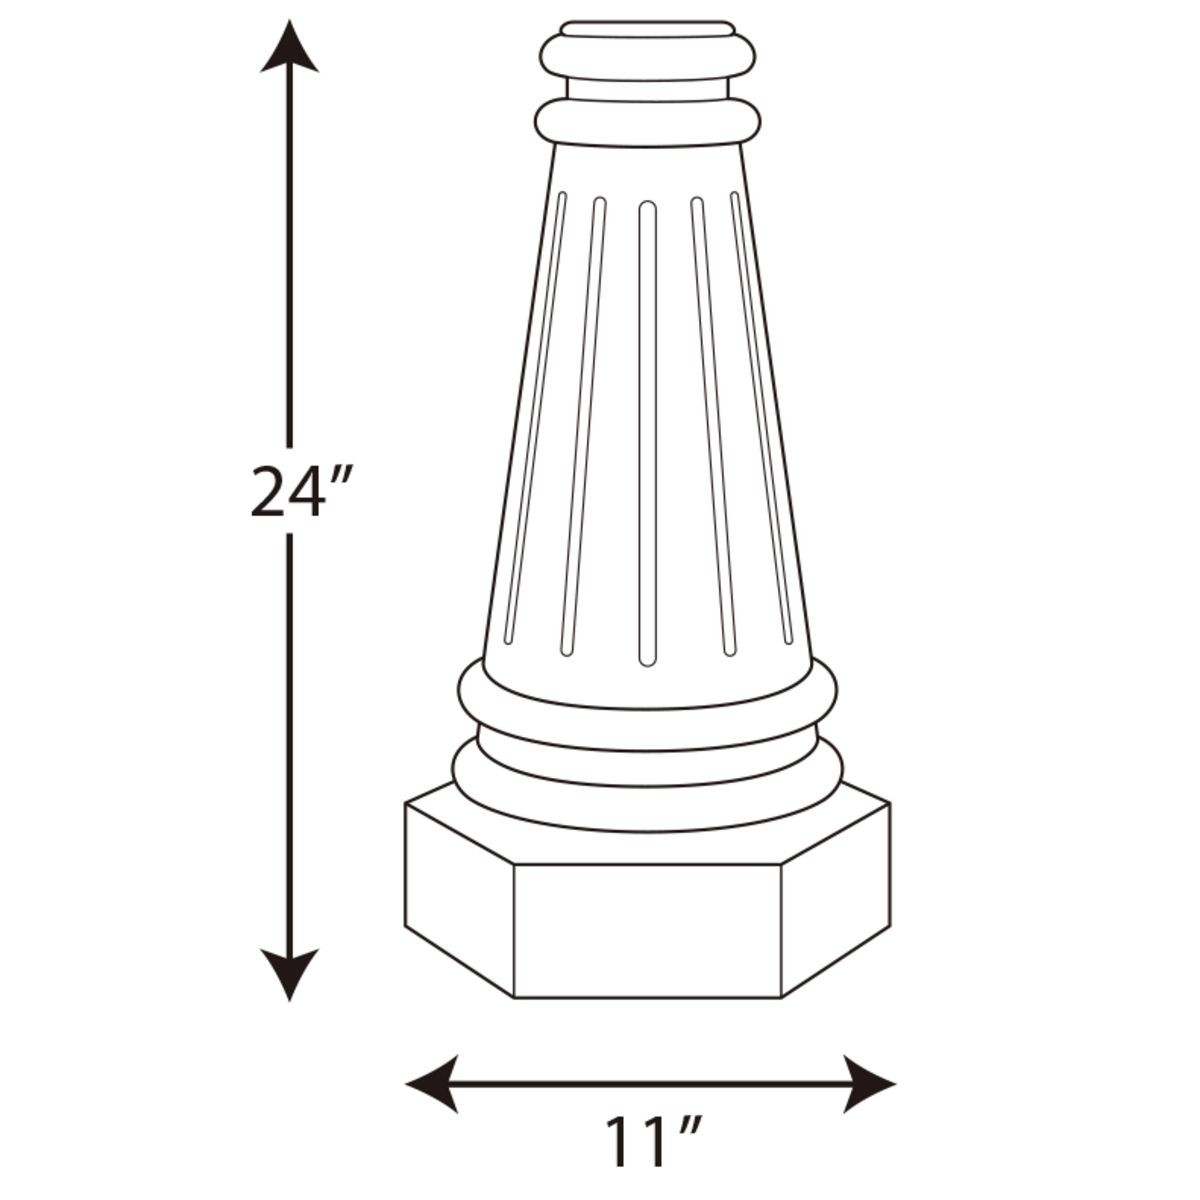 Progress Lighting Outdoor Pole Base for 3 Inch Round Posts